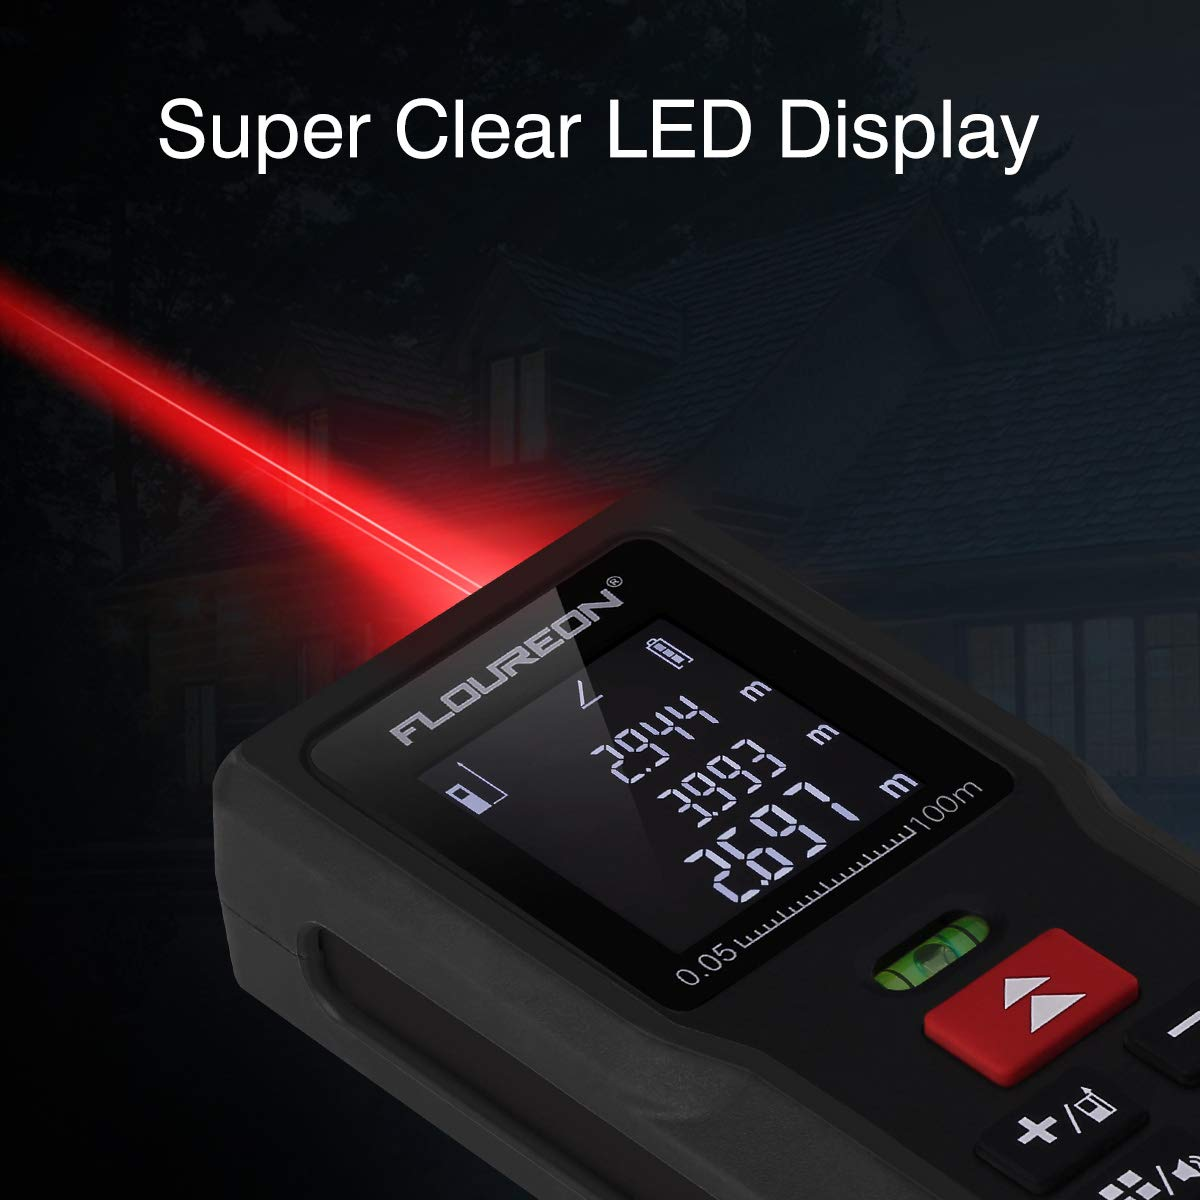 FLOUREON Laser Distance Meter 100m/328ft with 2 Bubble Level High-Precision Laser Measure Device for Measuring Length, Area, Volume Pythagorean with Backlight LCD Display (Battery Included)